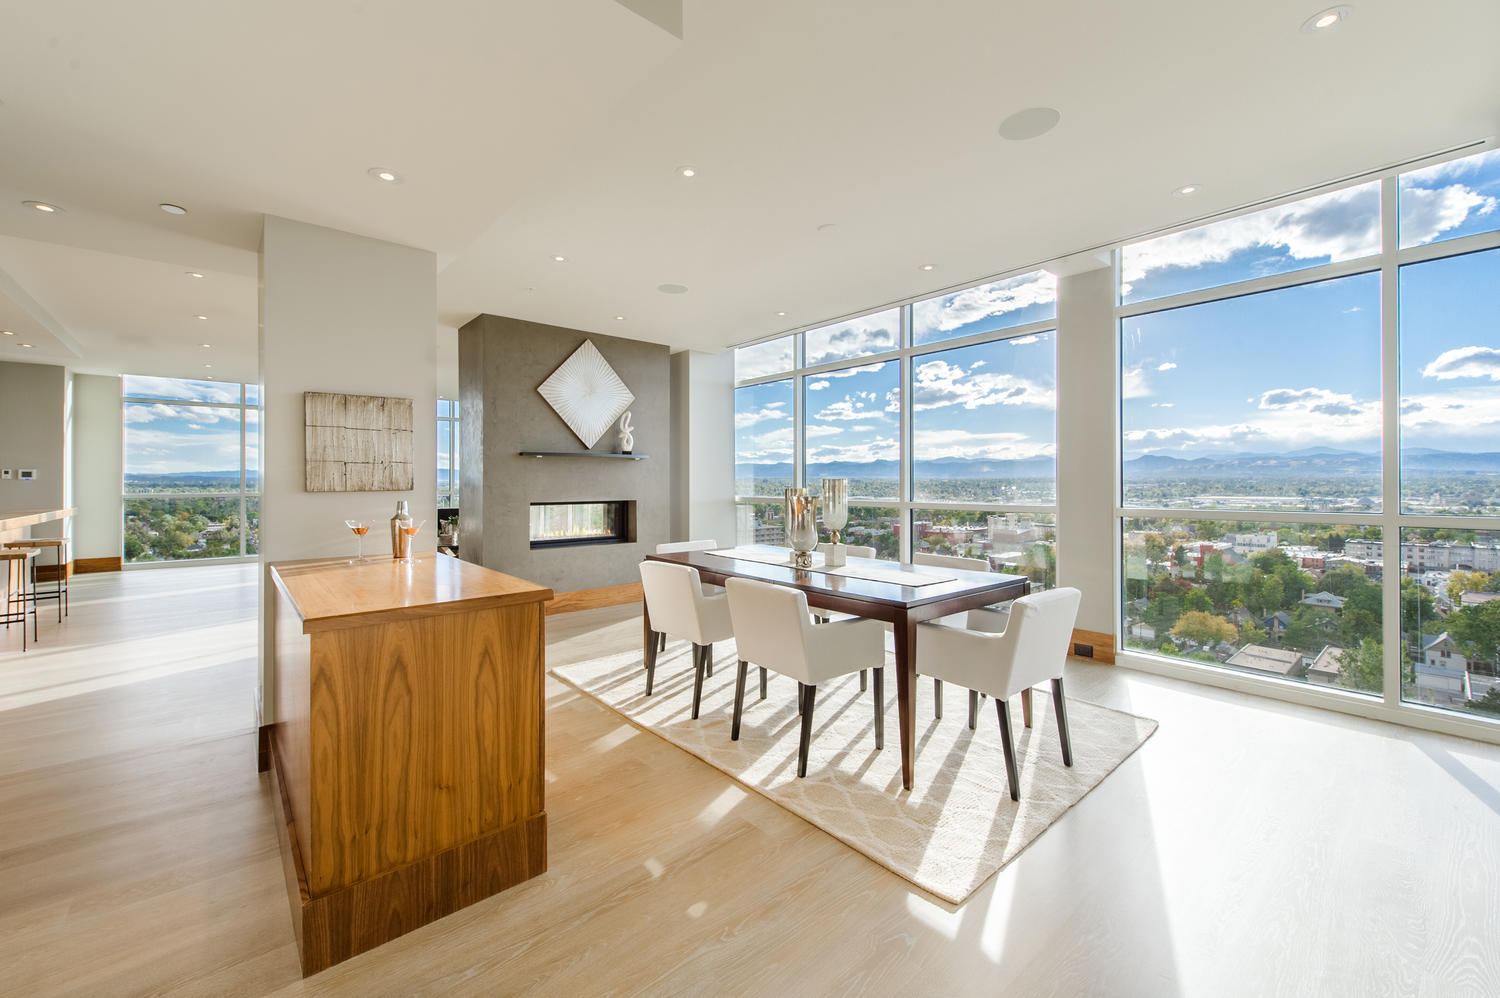 Condominium for Sale at Striking Contemporary Penthouse in the Heart of Denver 400 East 3rd Avenue #1702 Denver, Colorado, 80203 United States